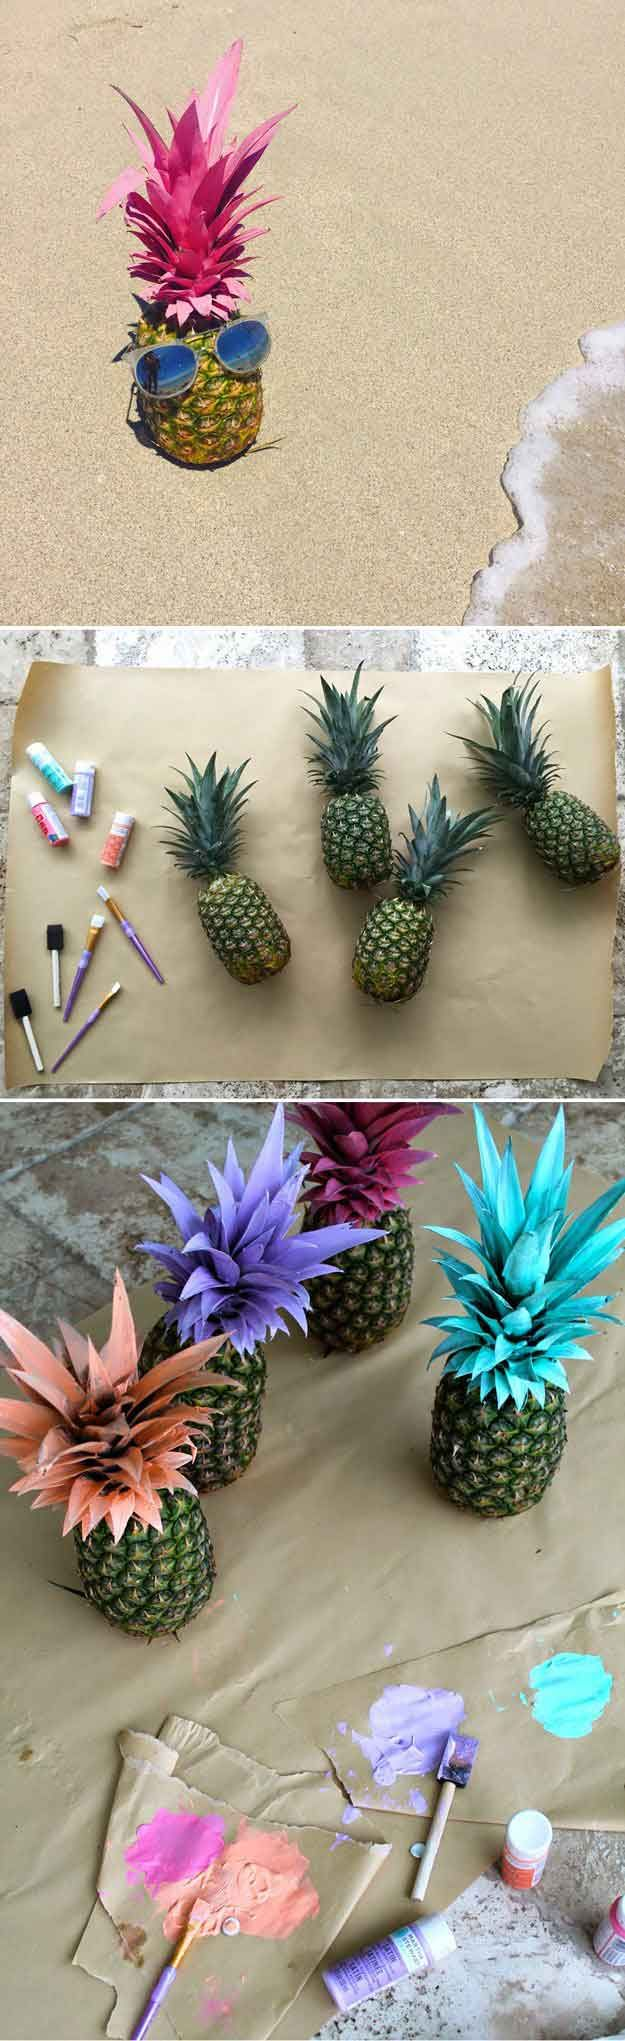 Fun Centerpiece idea for tables  along with the pails filled w/utensils